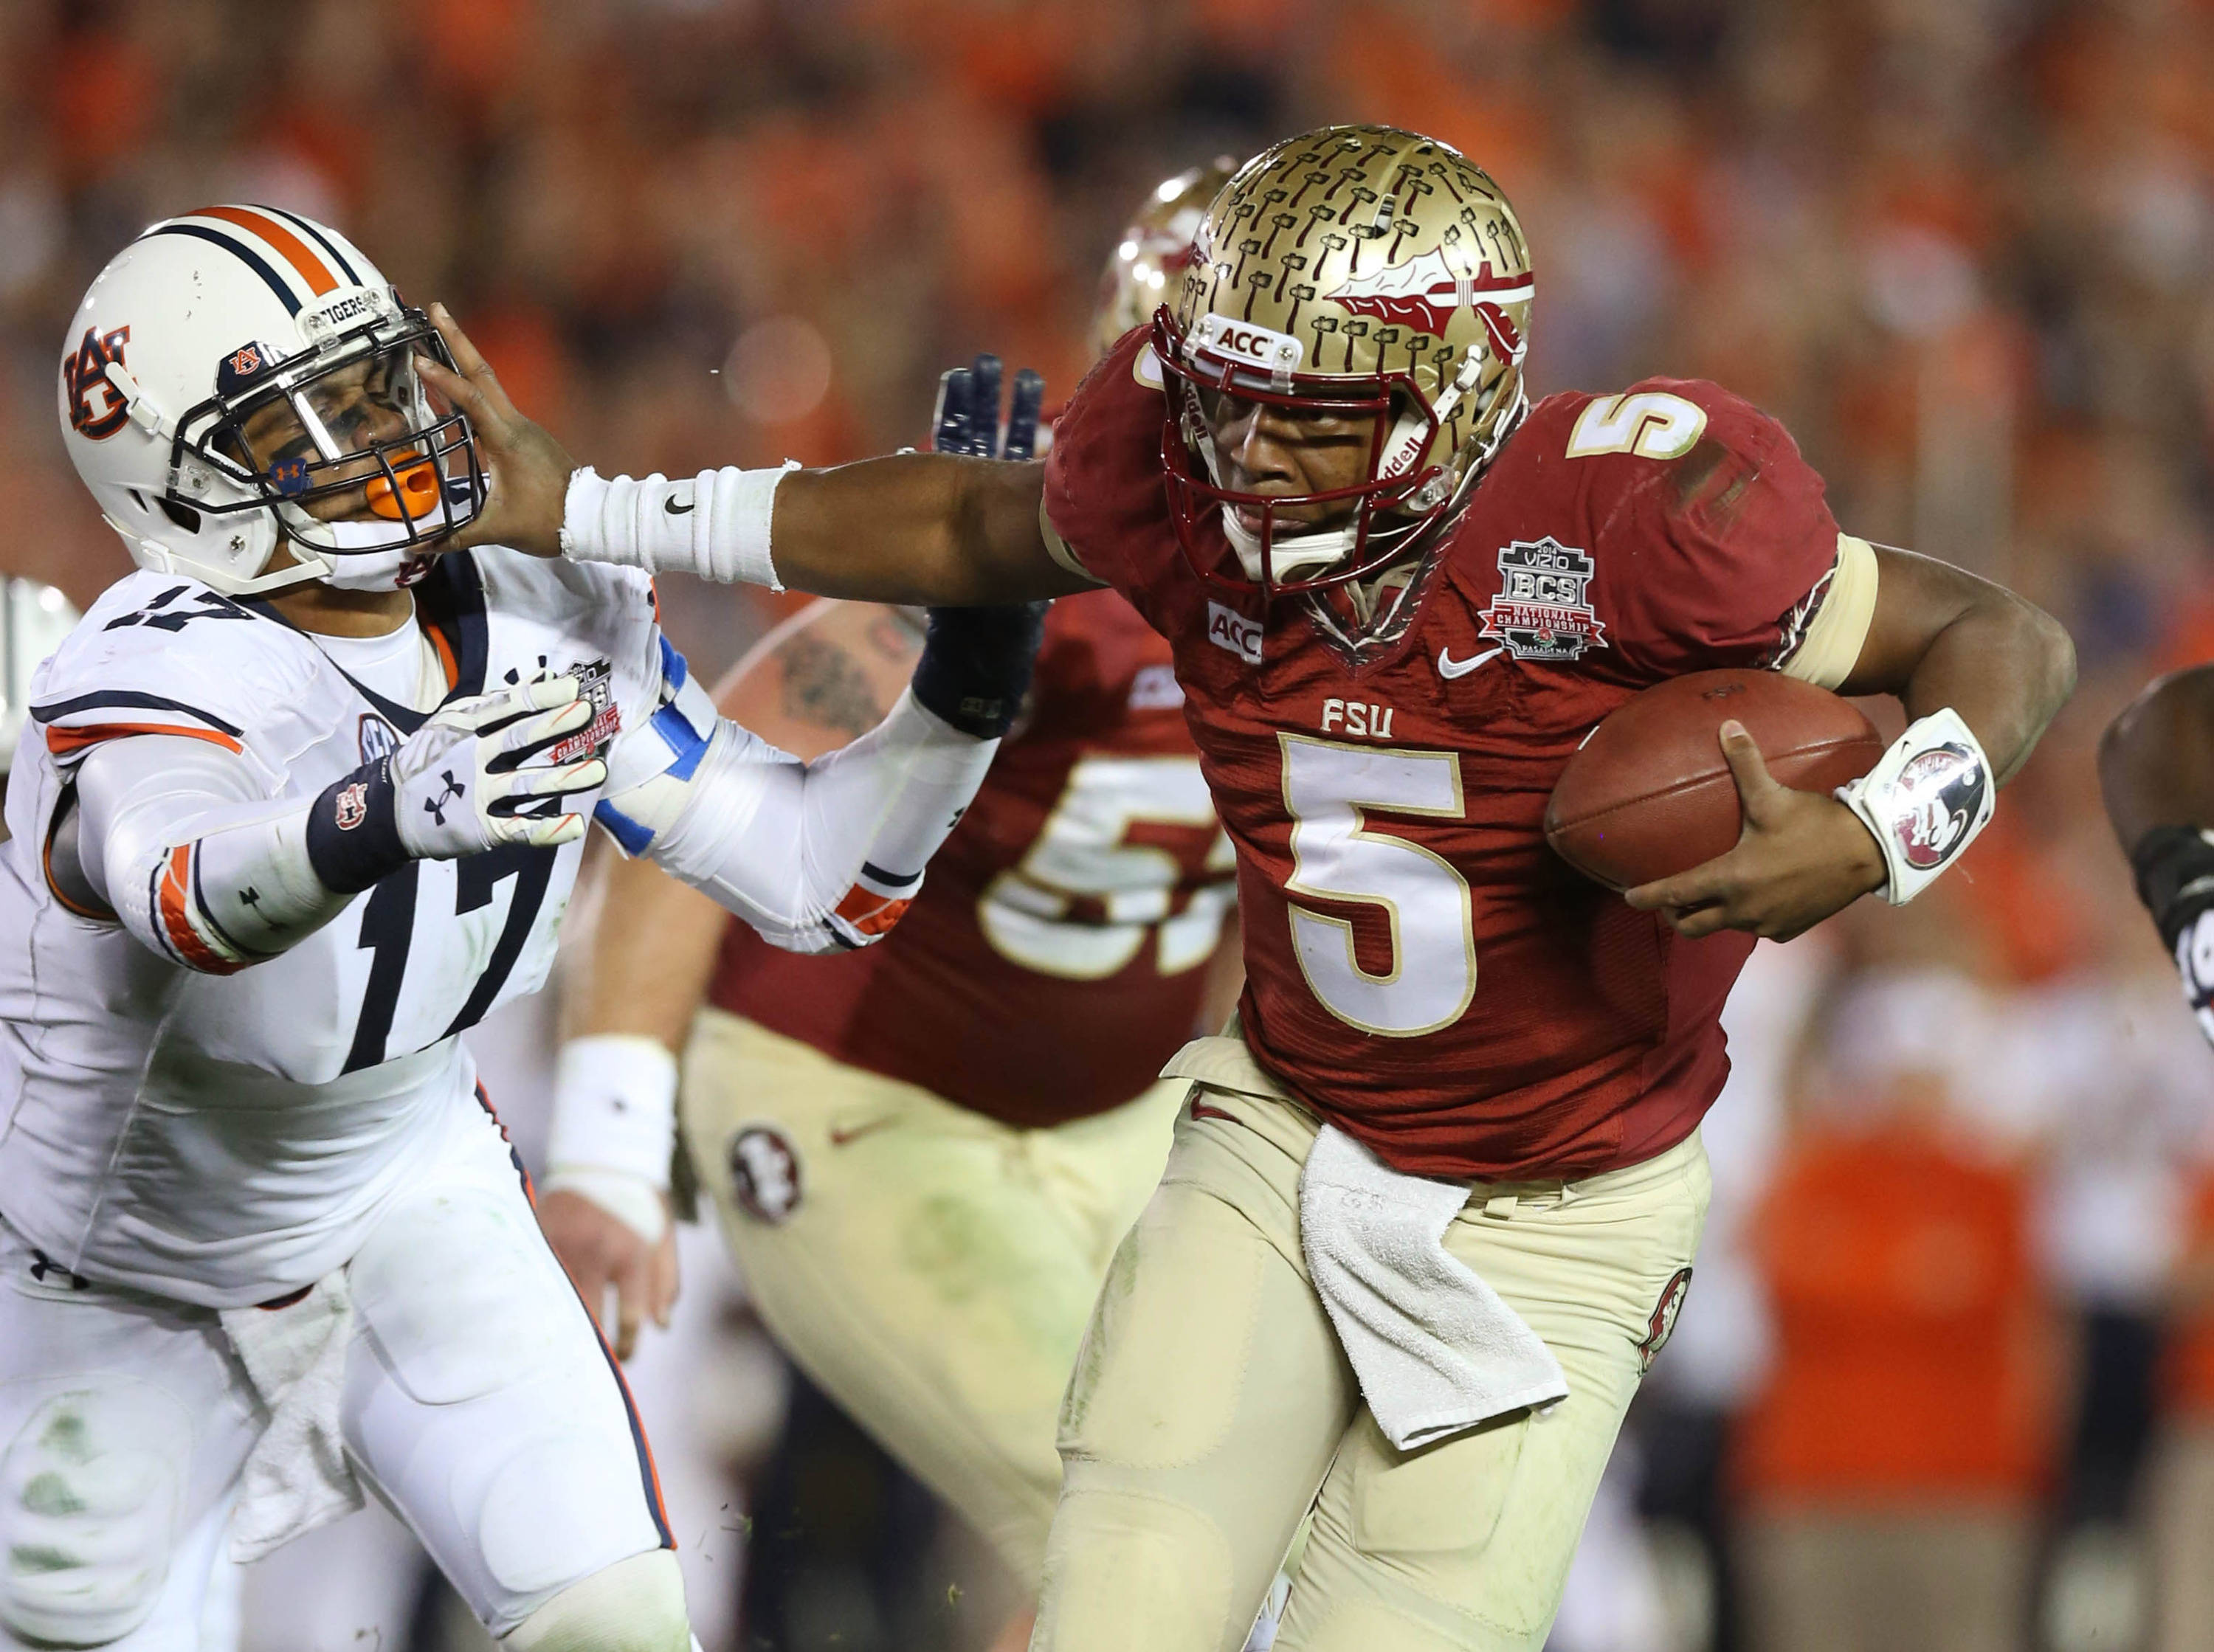 Jan 6, 2014; Pasadena, CA, USA; Florida State Seminoles quarterback Jameis Winston (5) stiff arms Auburn Tigers linebacker Kris Frost (17) during the first half of the 2014 BCS National Championship game at the Rose Bowl.  Mandatory Credit: Matthew Emmons-USA TODAY Sports